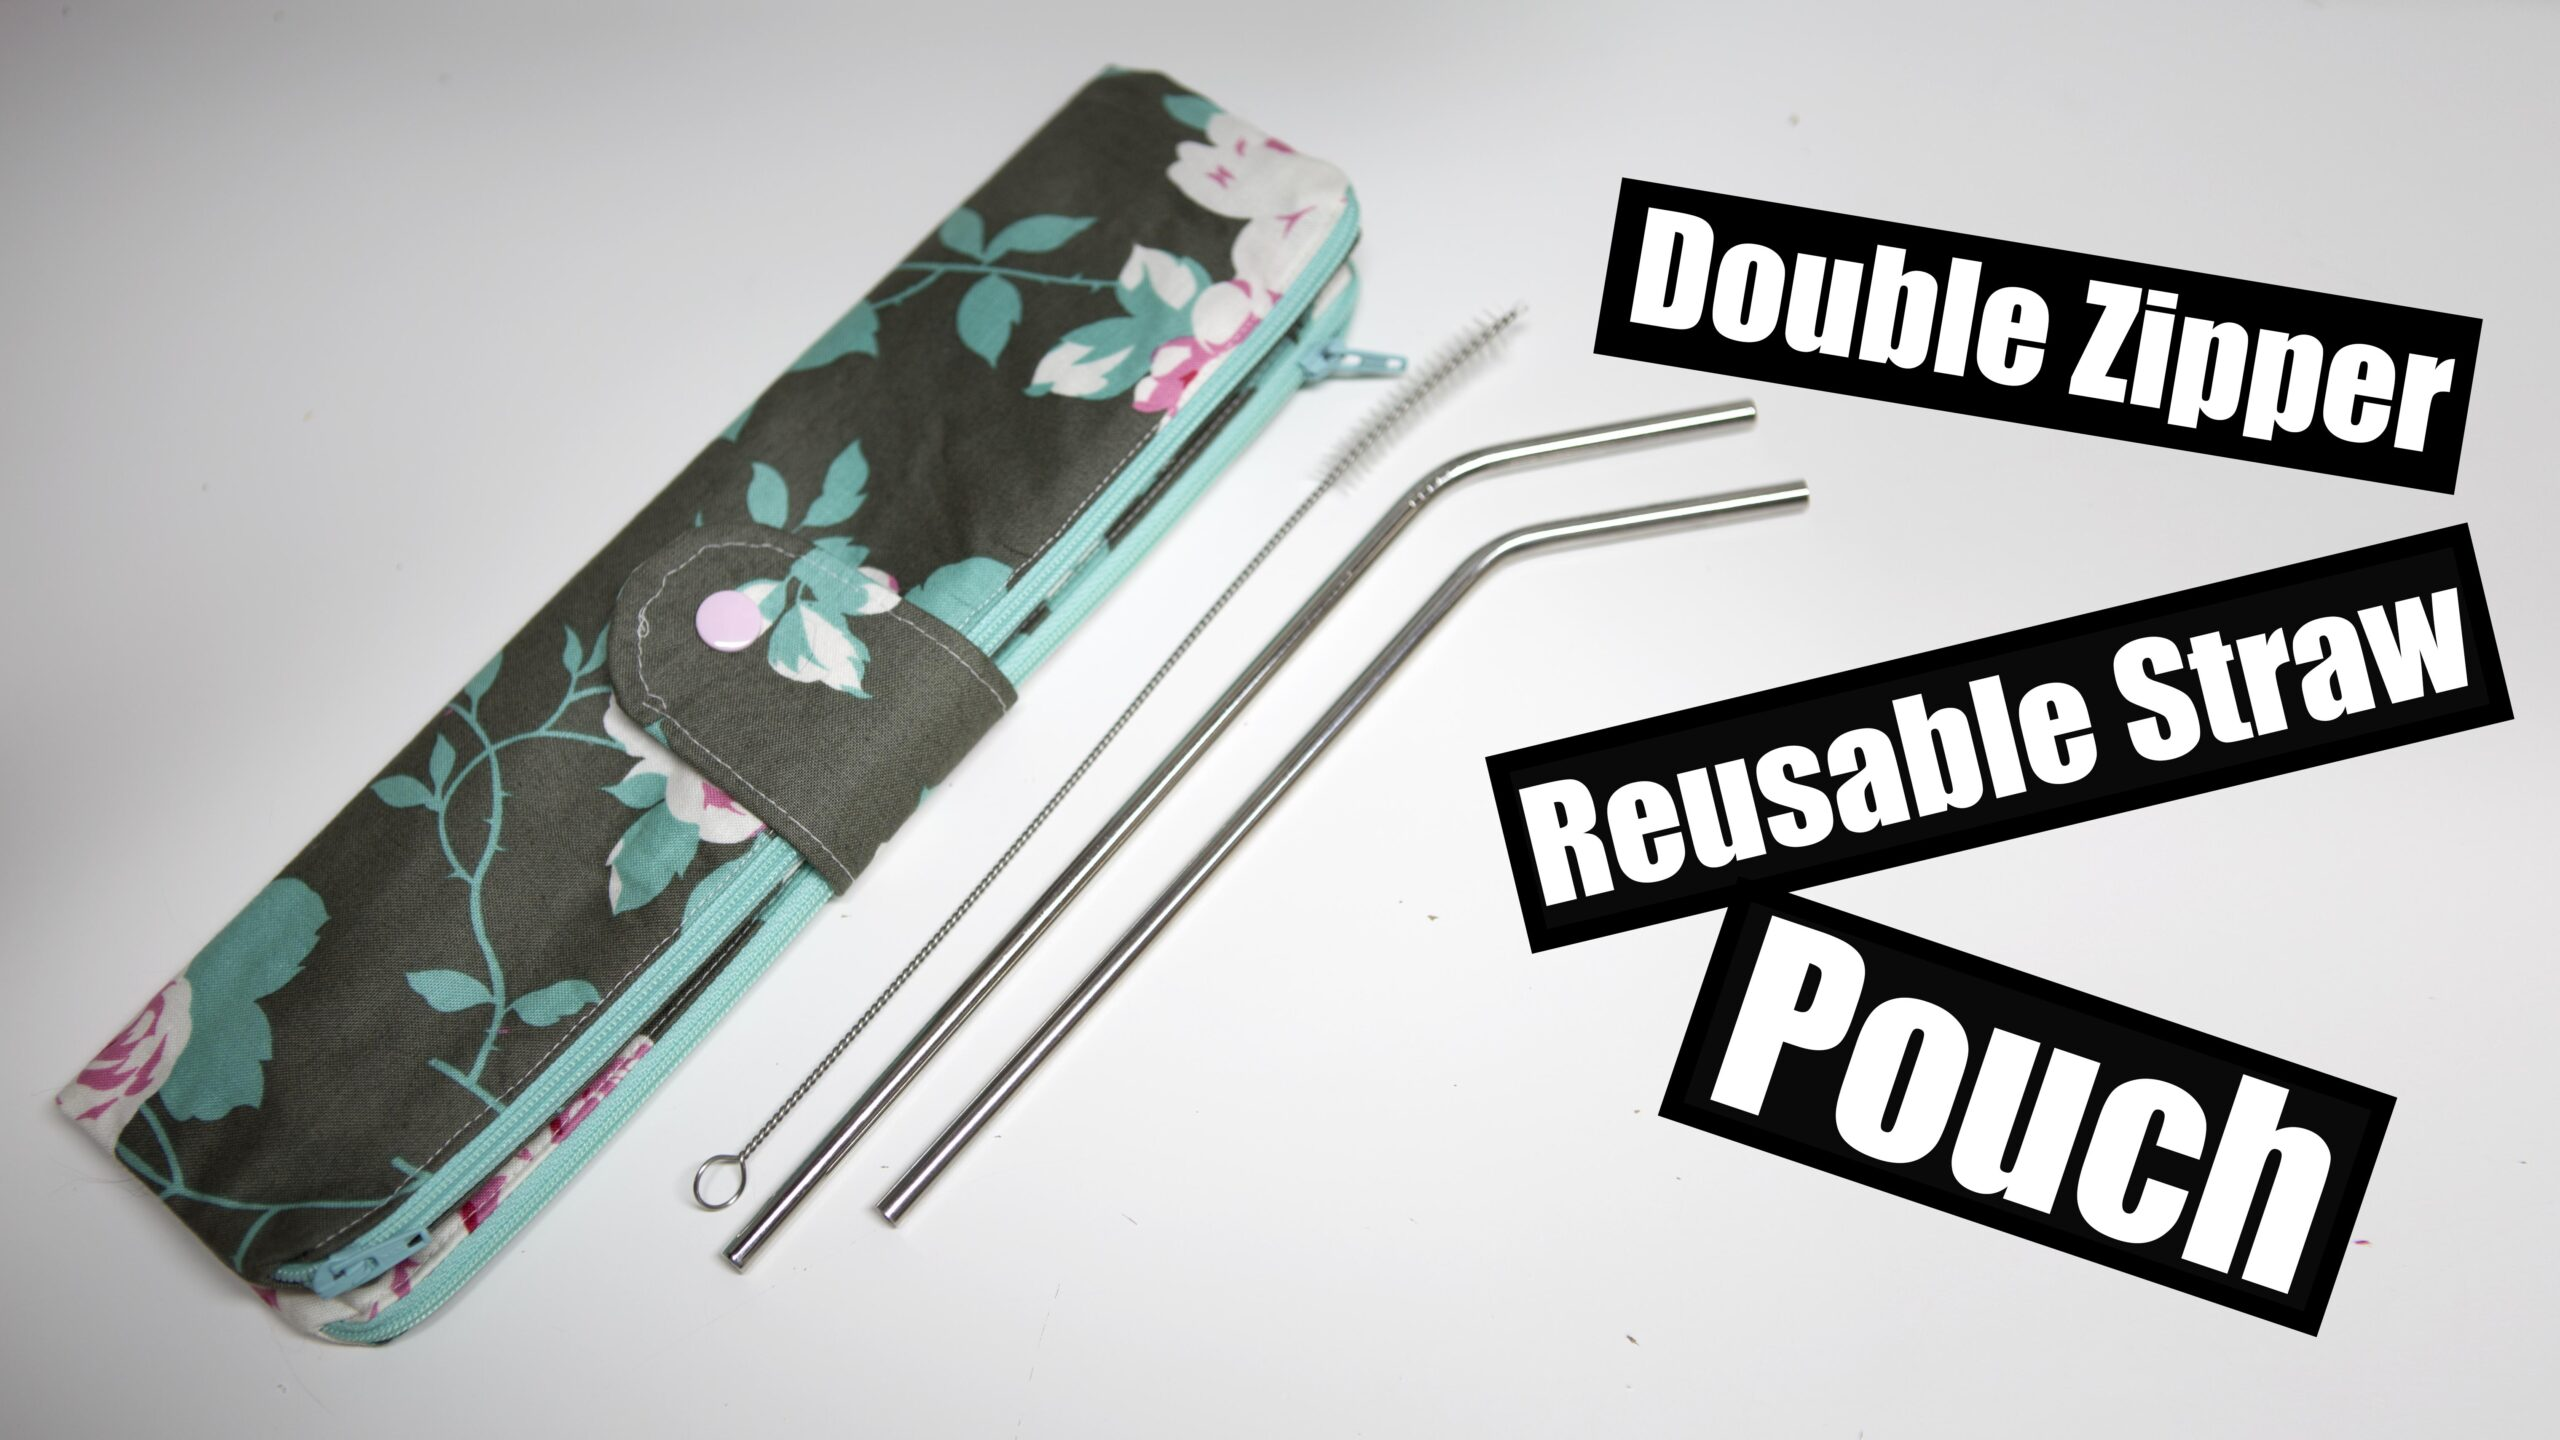 Double zipper Straw Pouch